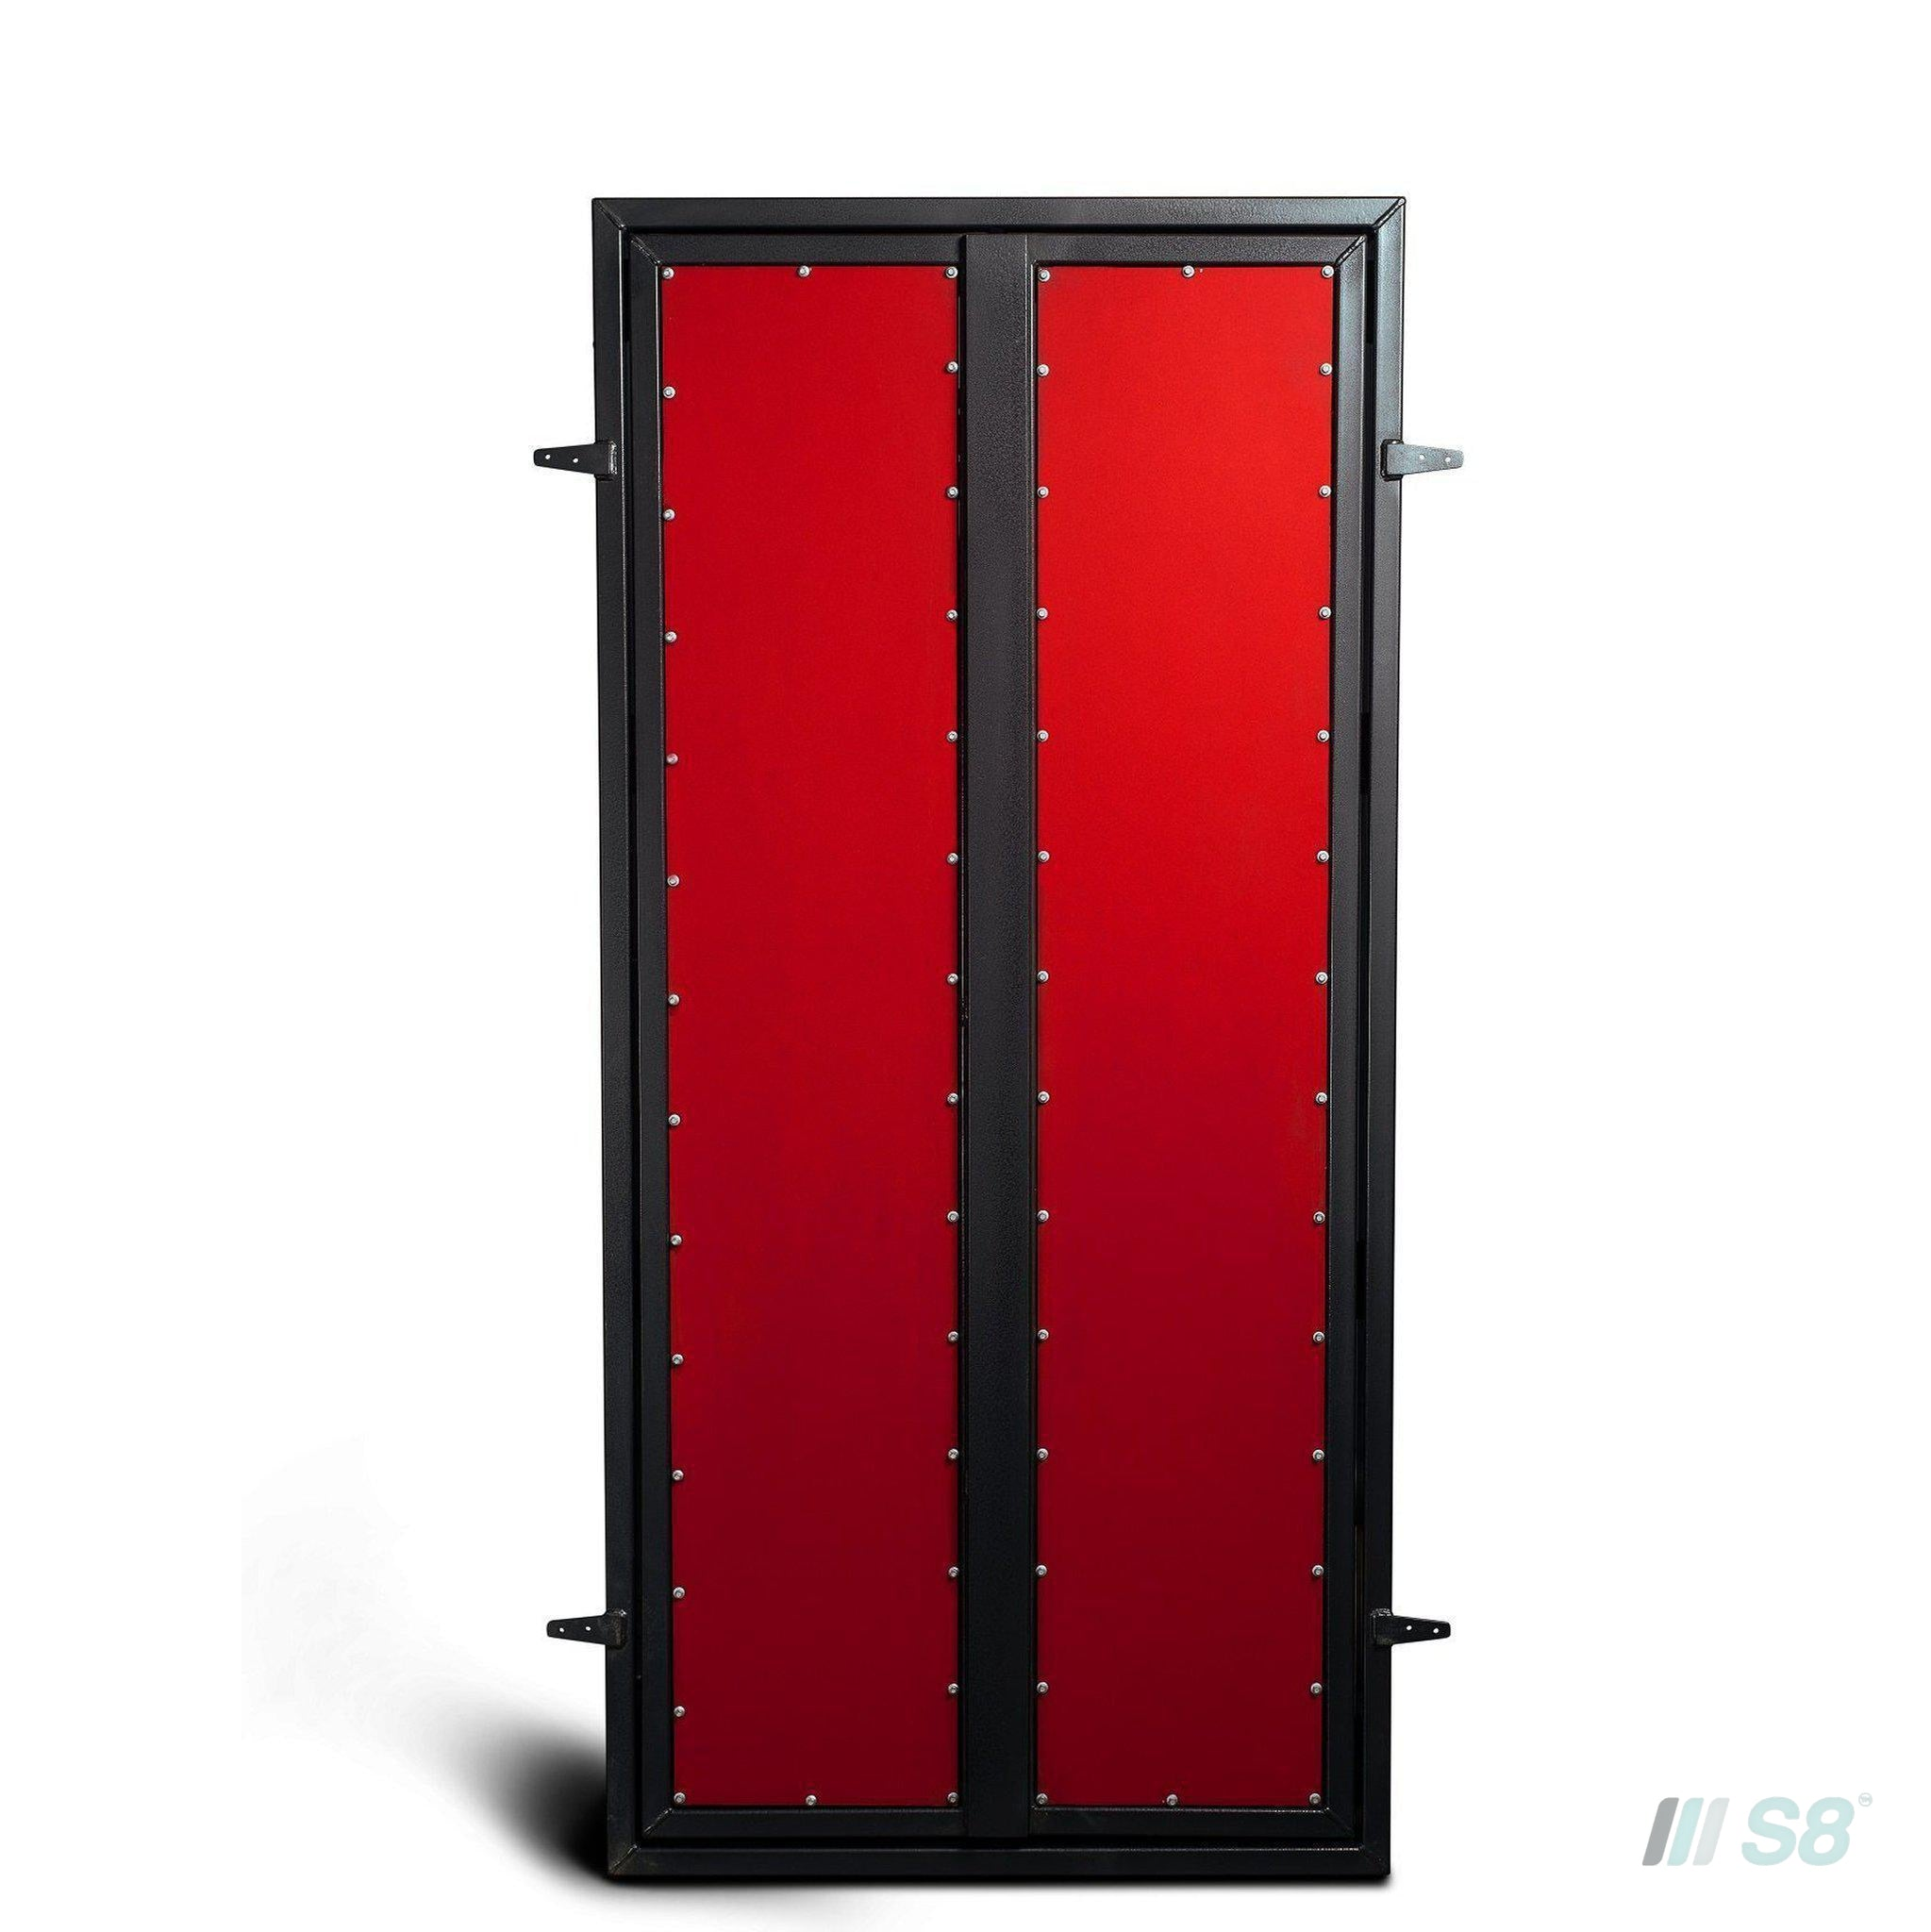 BTI Explosive Doors-BTI-S8 Products Group